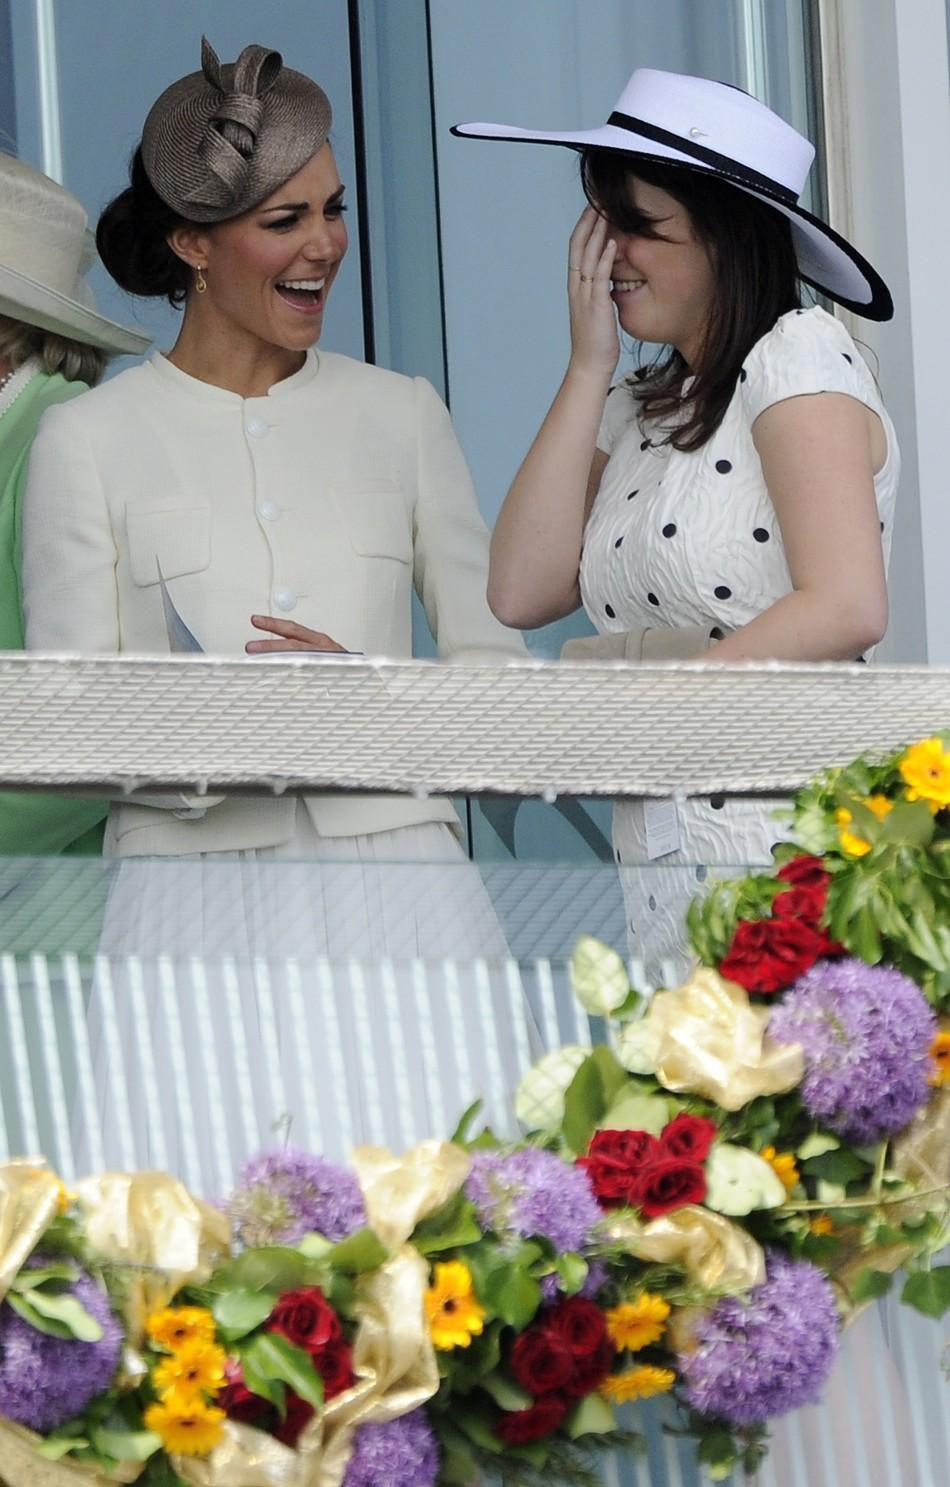 Catherine, Britains Duchess of Cambridge, jokes with Princess Eugenie as they attend Epsom Derby horse race at Epsom Racecourse in southern England